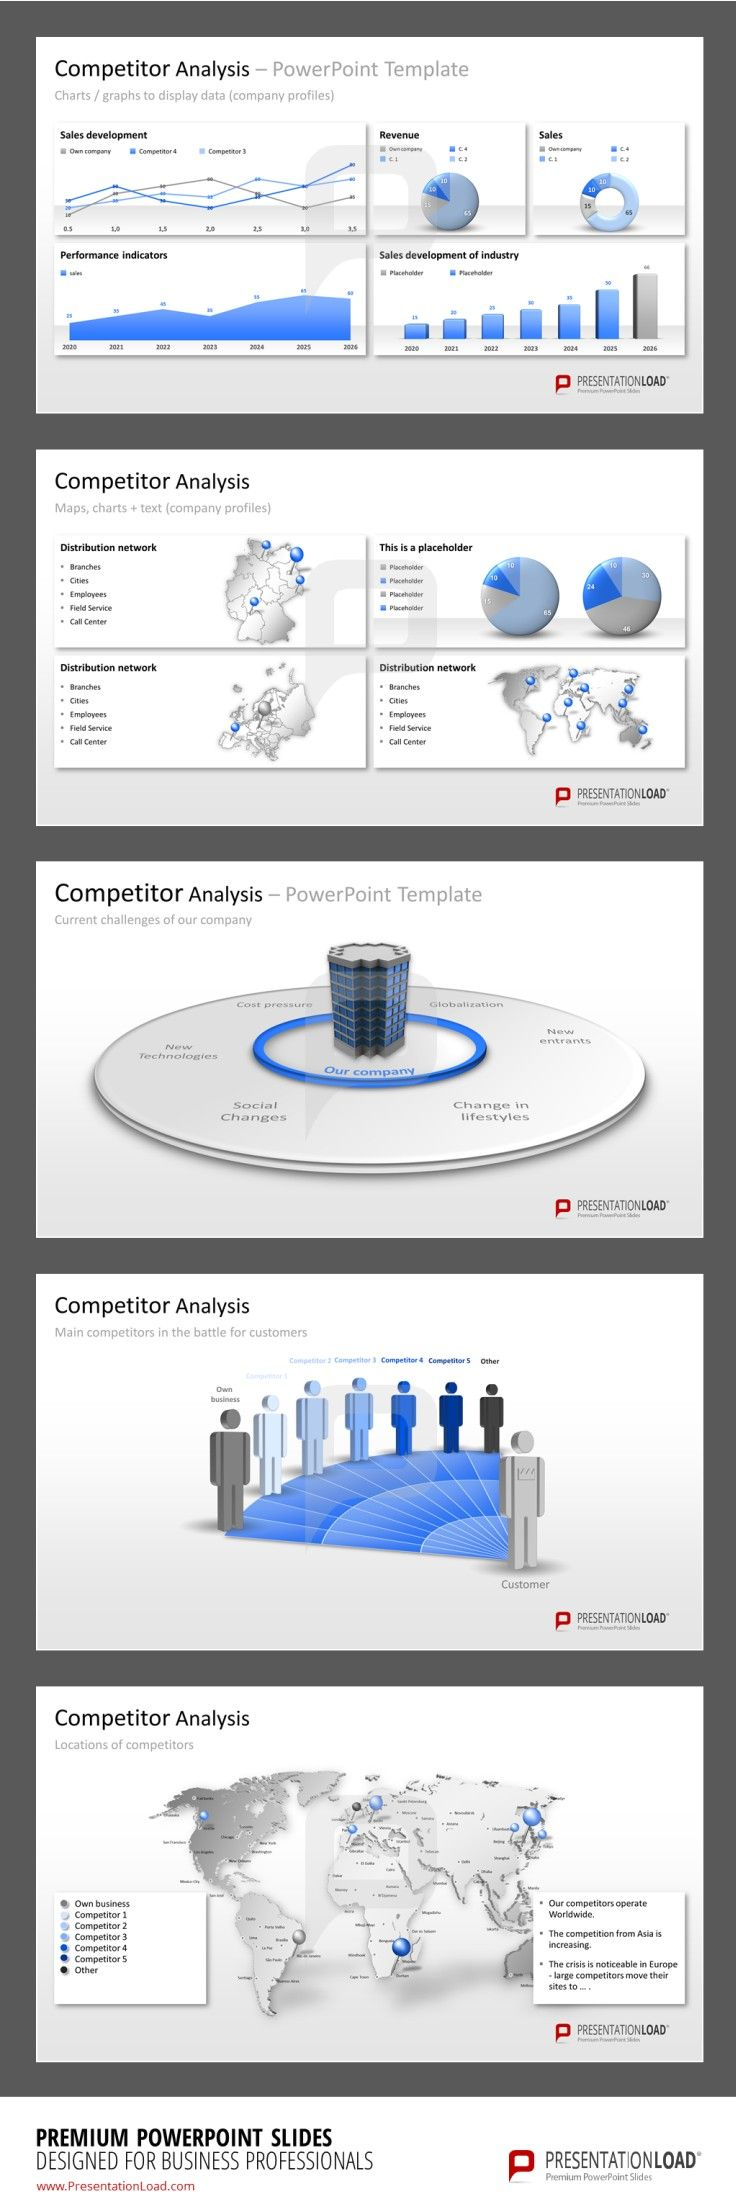 Competitor Analysis PowerPoint Templates The Competitor Analysis PowerPoint Templates contain a variety of Charts and Graphs to display and compare important data of your company and your competitors.   #presentationload  http://www.presentationload.com/competitor-analysis.html